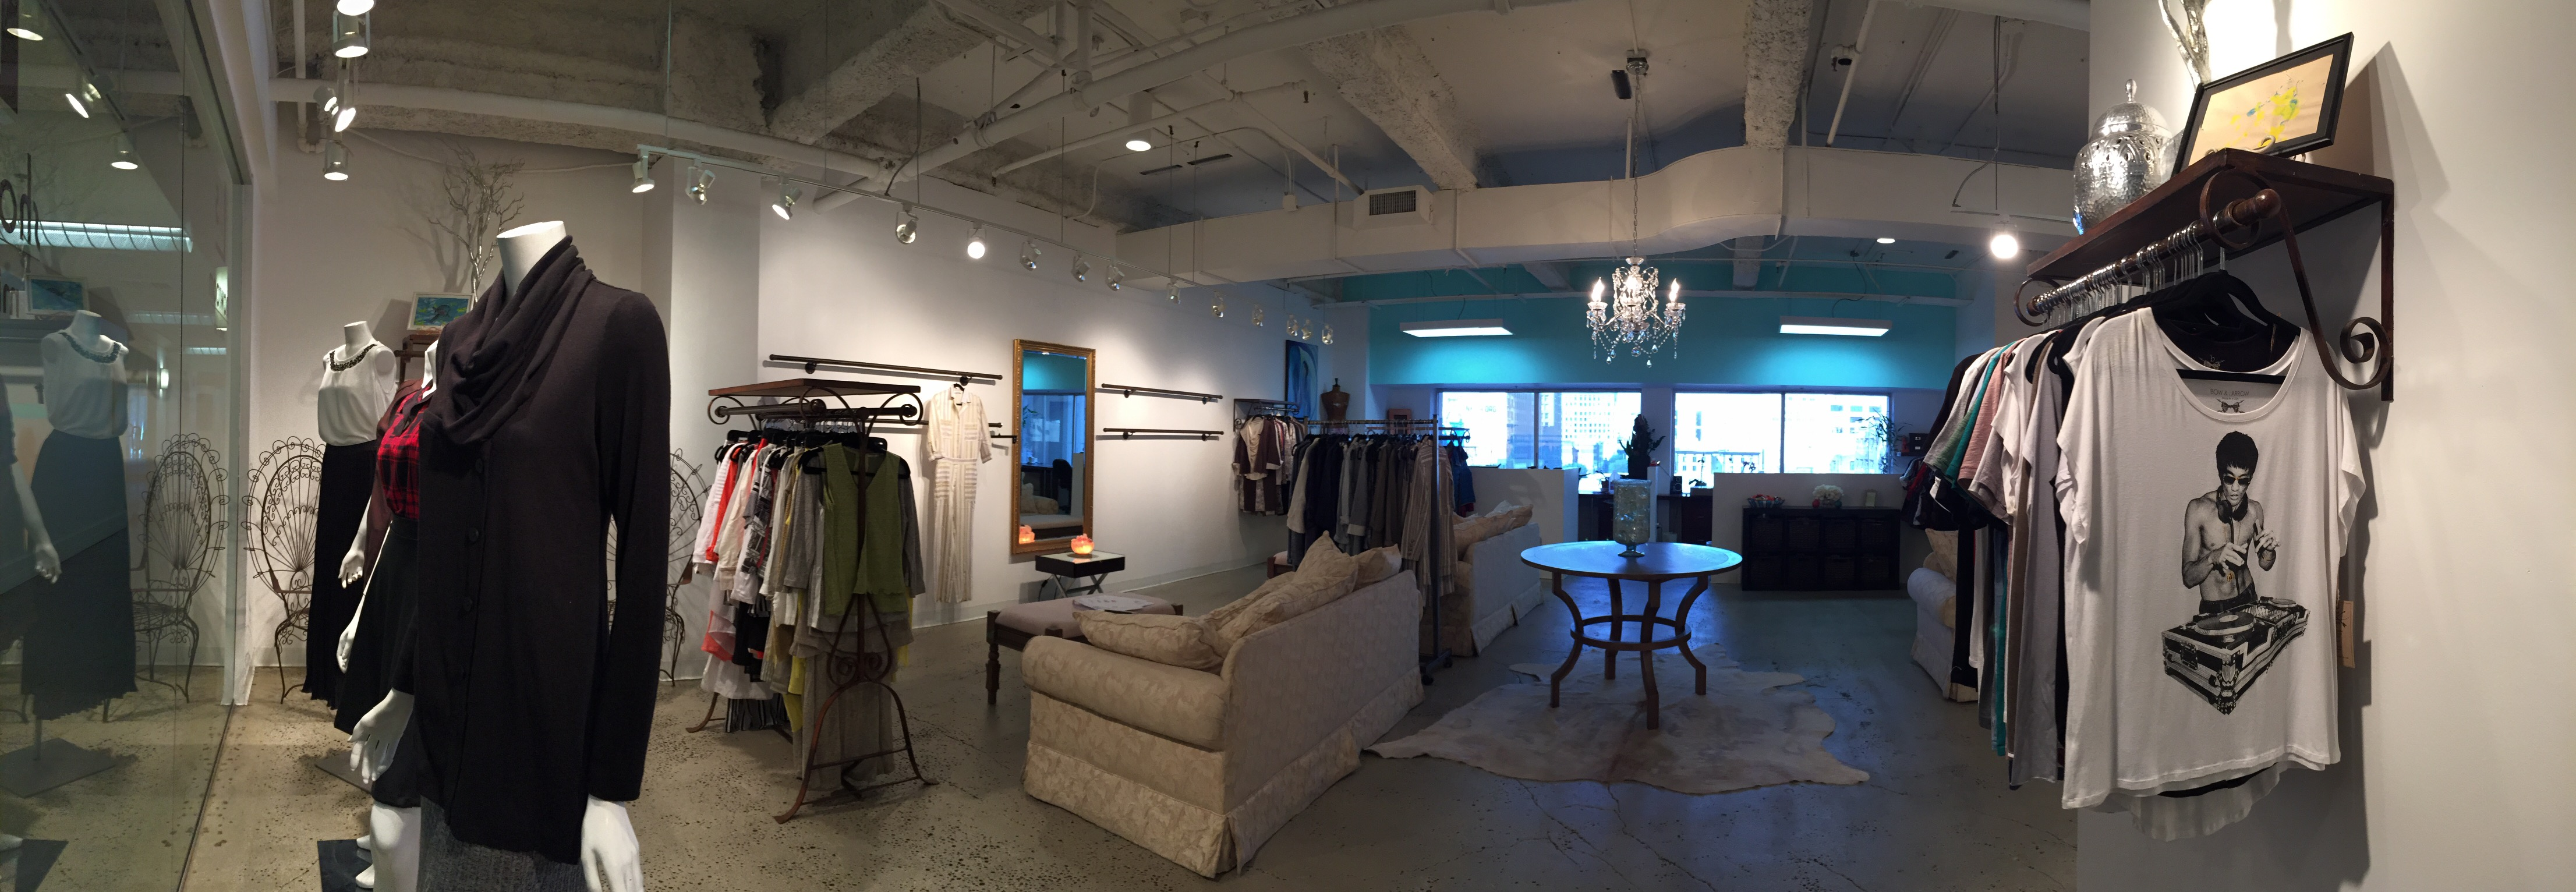 Best Fashion showrooms in Los Angeles, CA - Yelp 41